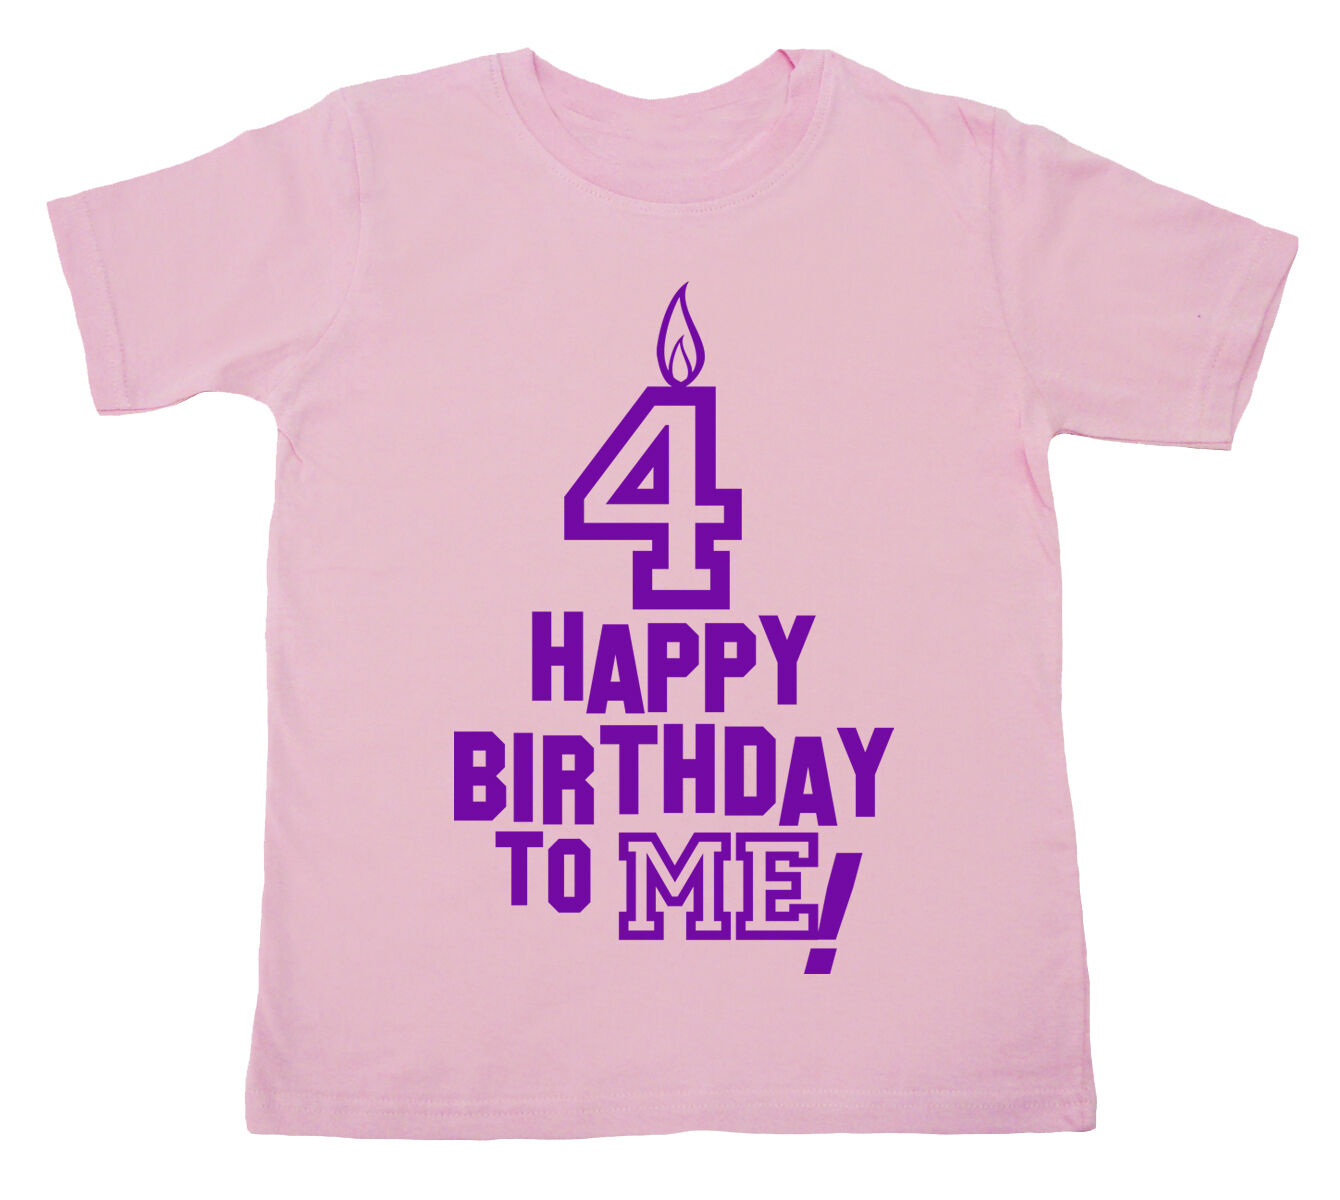 Details About 4 Birthday T Shirt Happy To Me Boy Girl 4th Forth Four Party Clothes